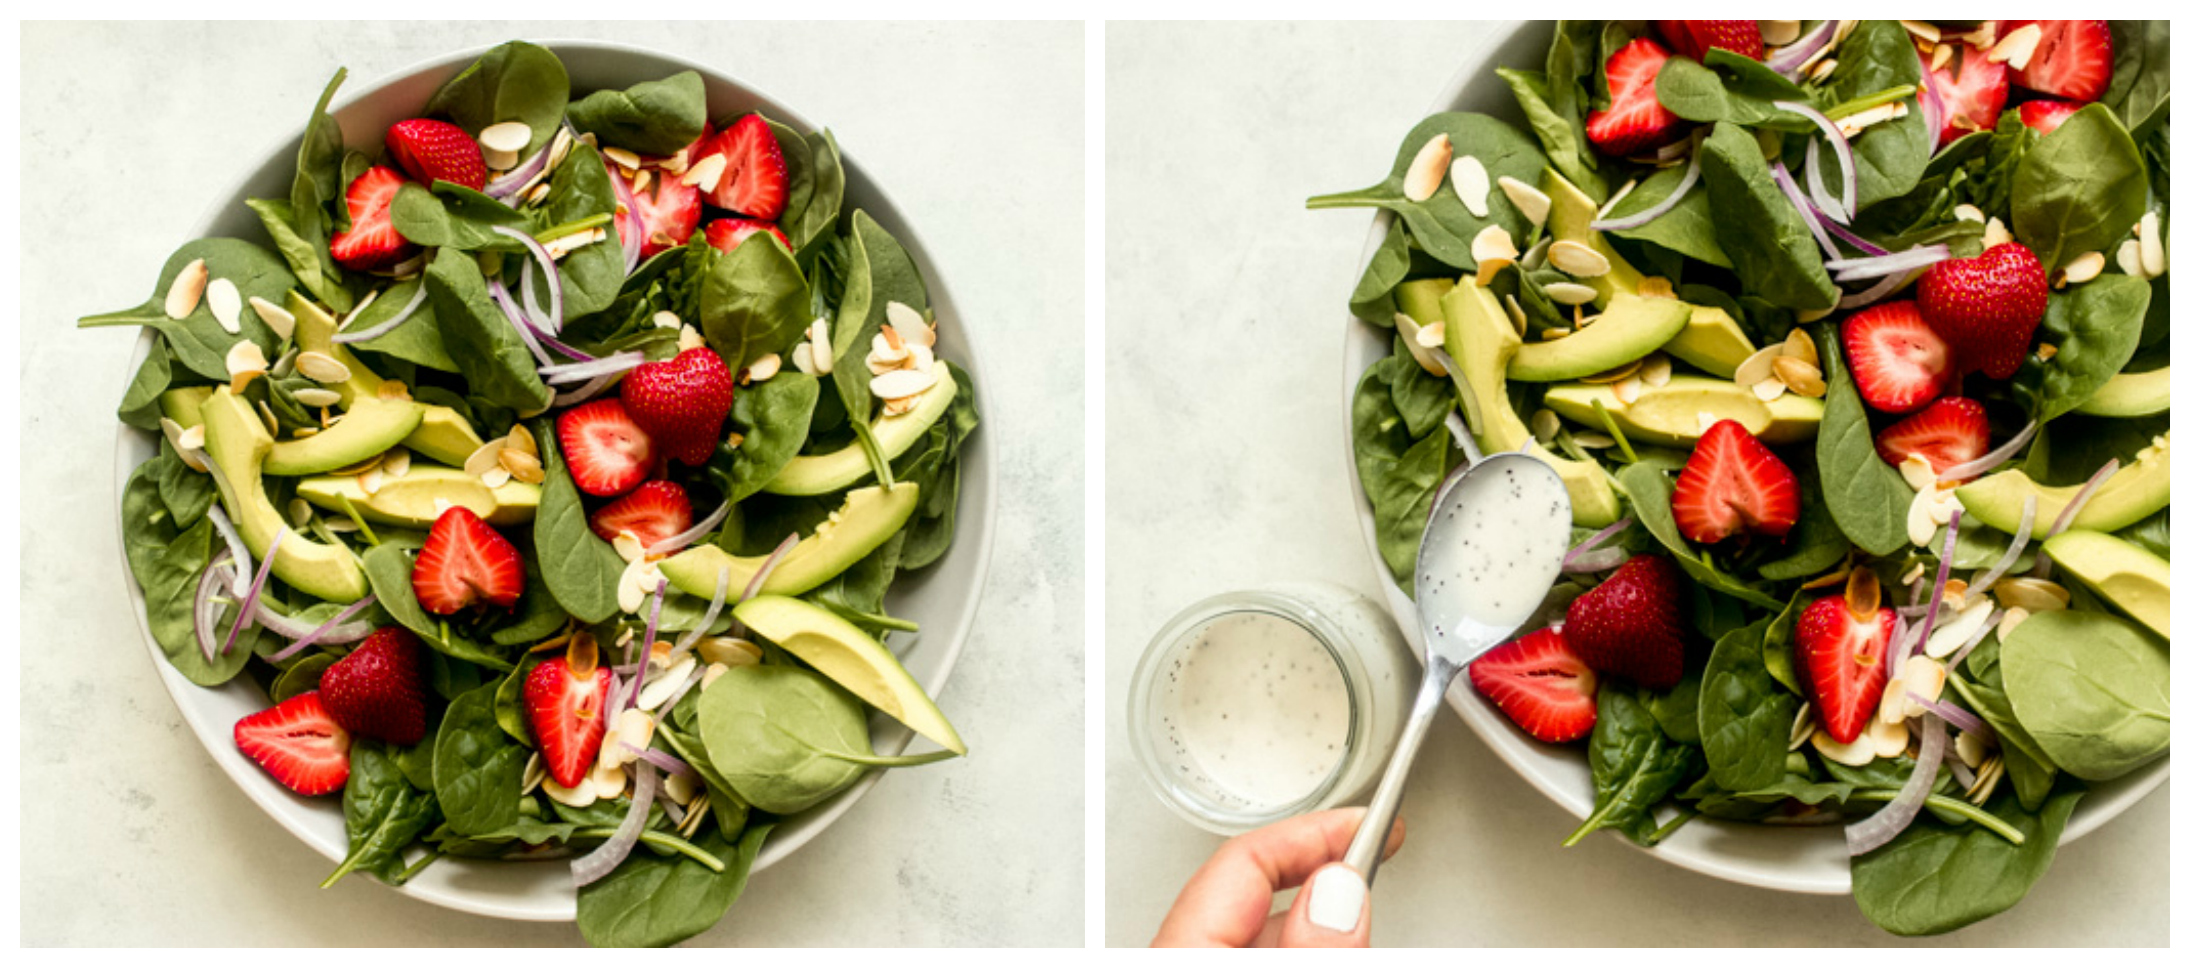 strawberry avocado spinach salad in white bowl